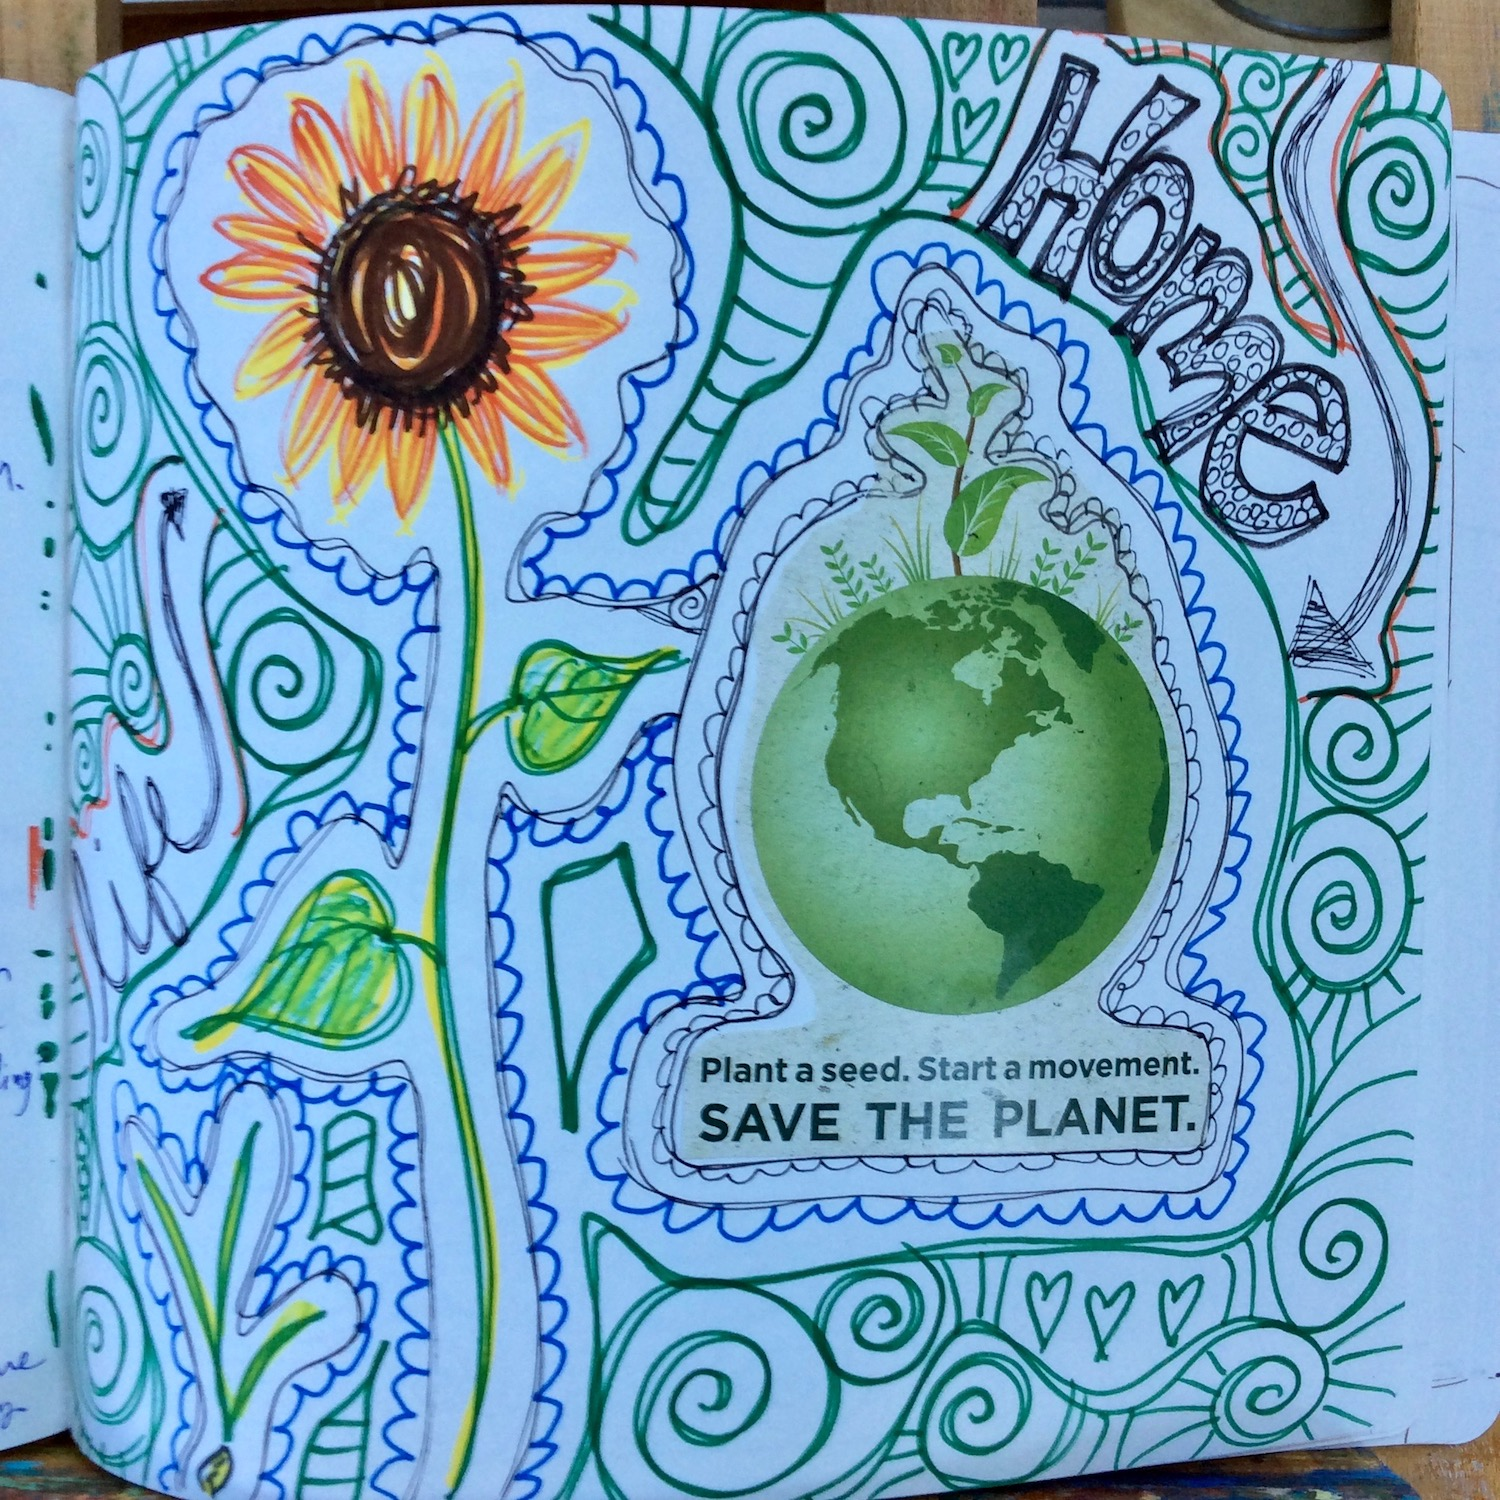 save the planet doodle.jpg